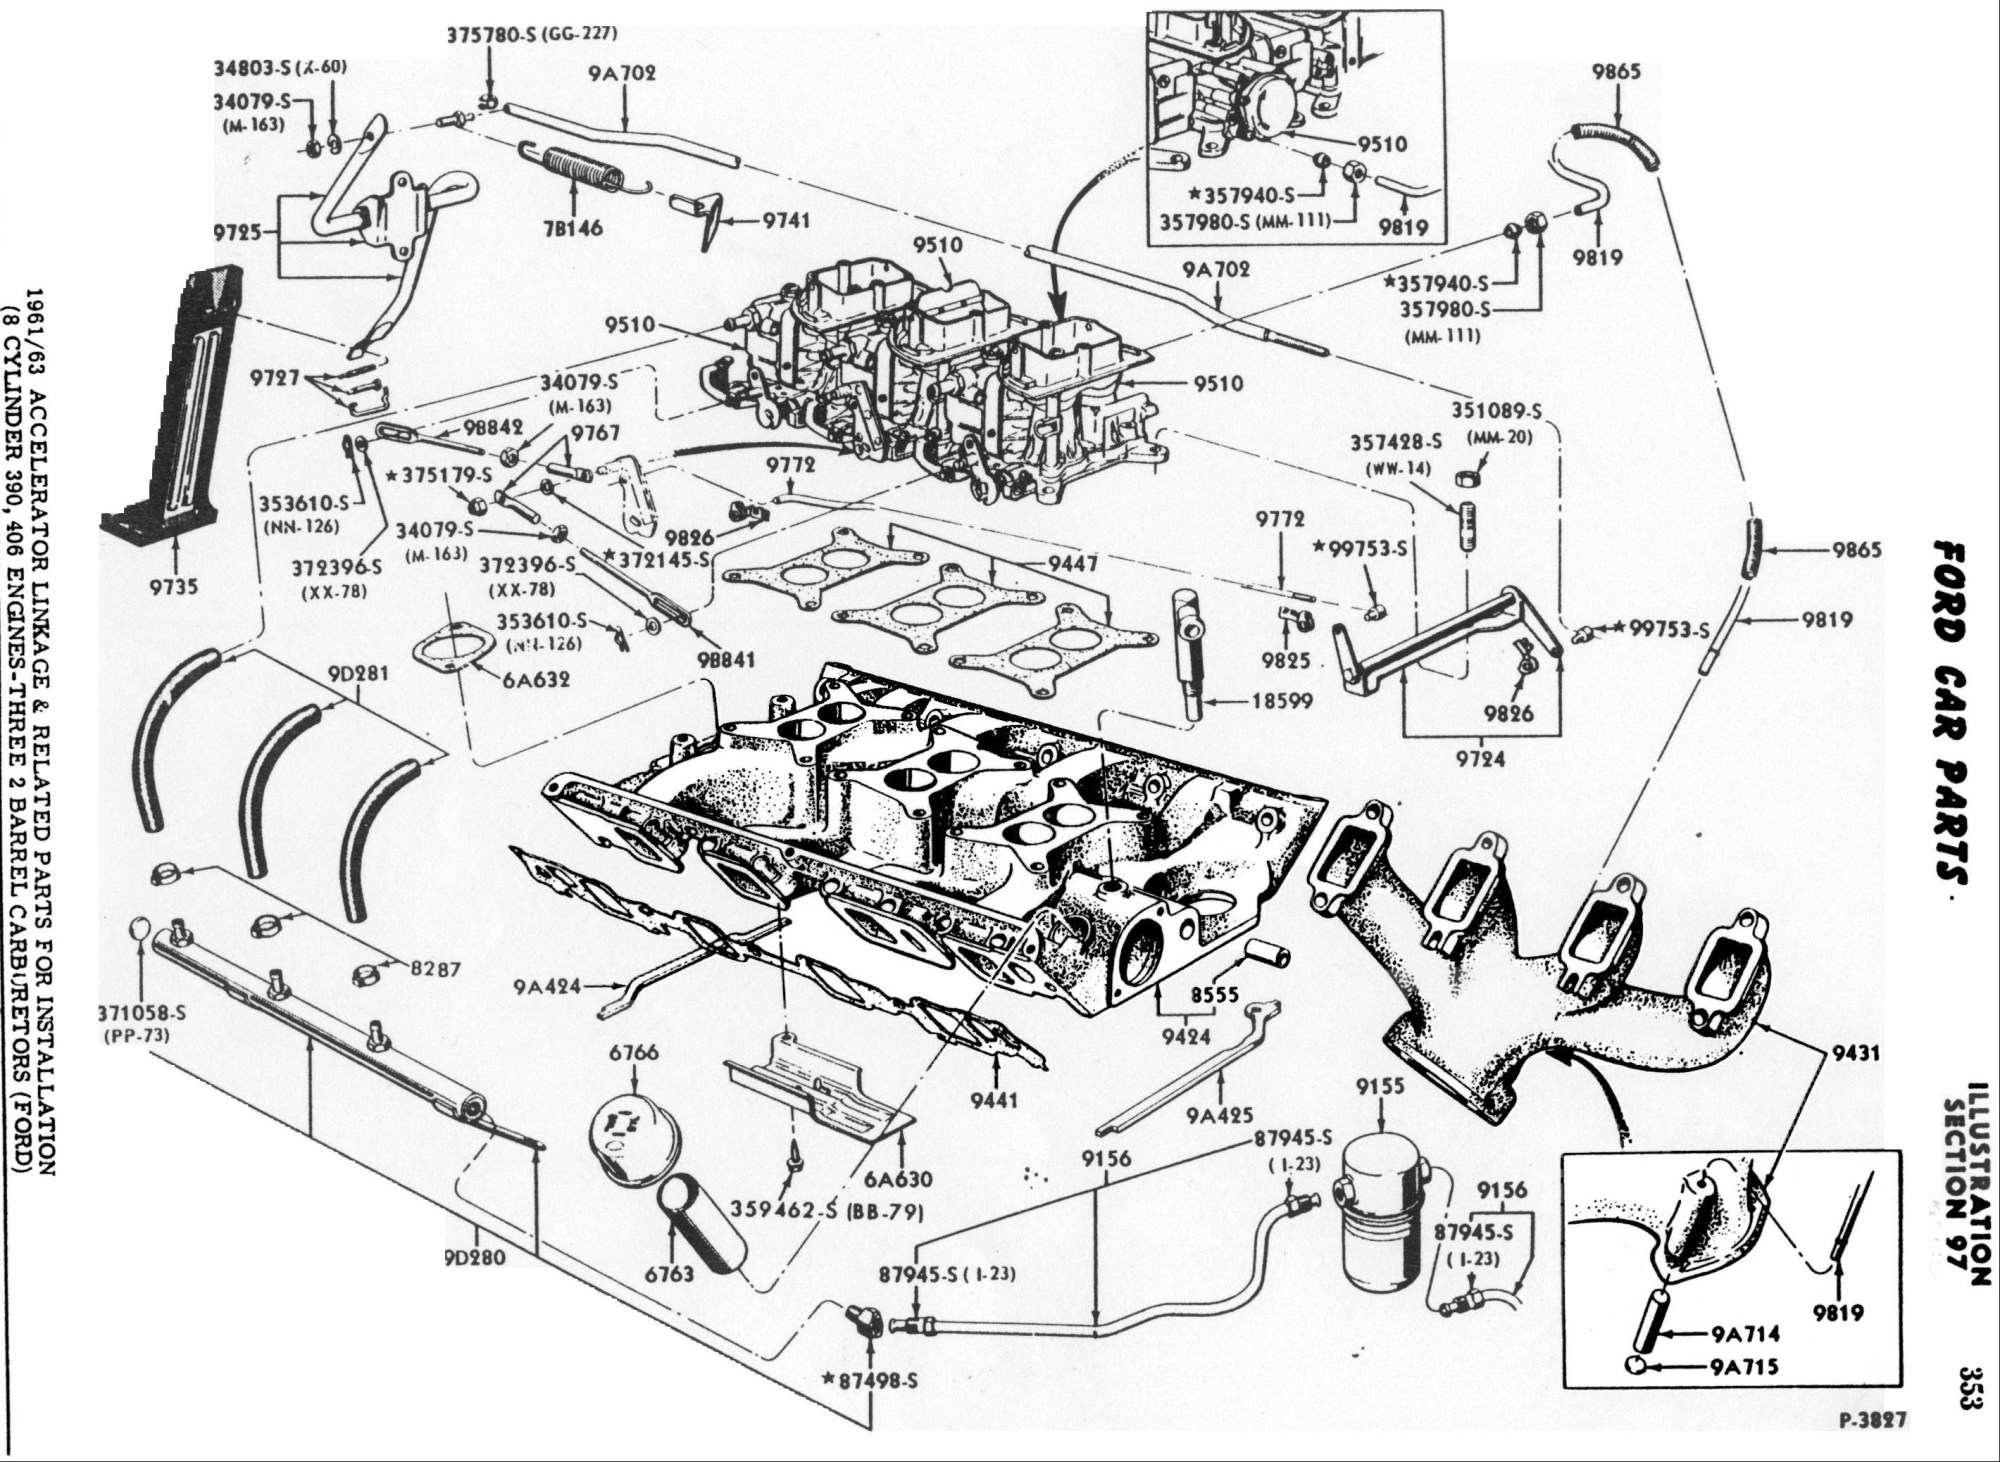 hight resolution of ford motor parts diagram enthusiast wiring diagrams u2022 ford taurus parts diagram ford 300 parts